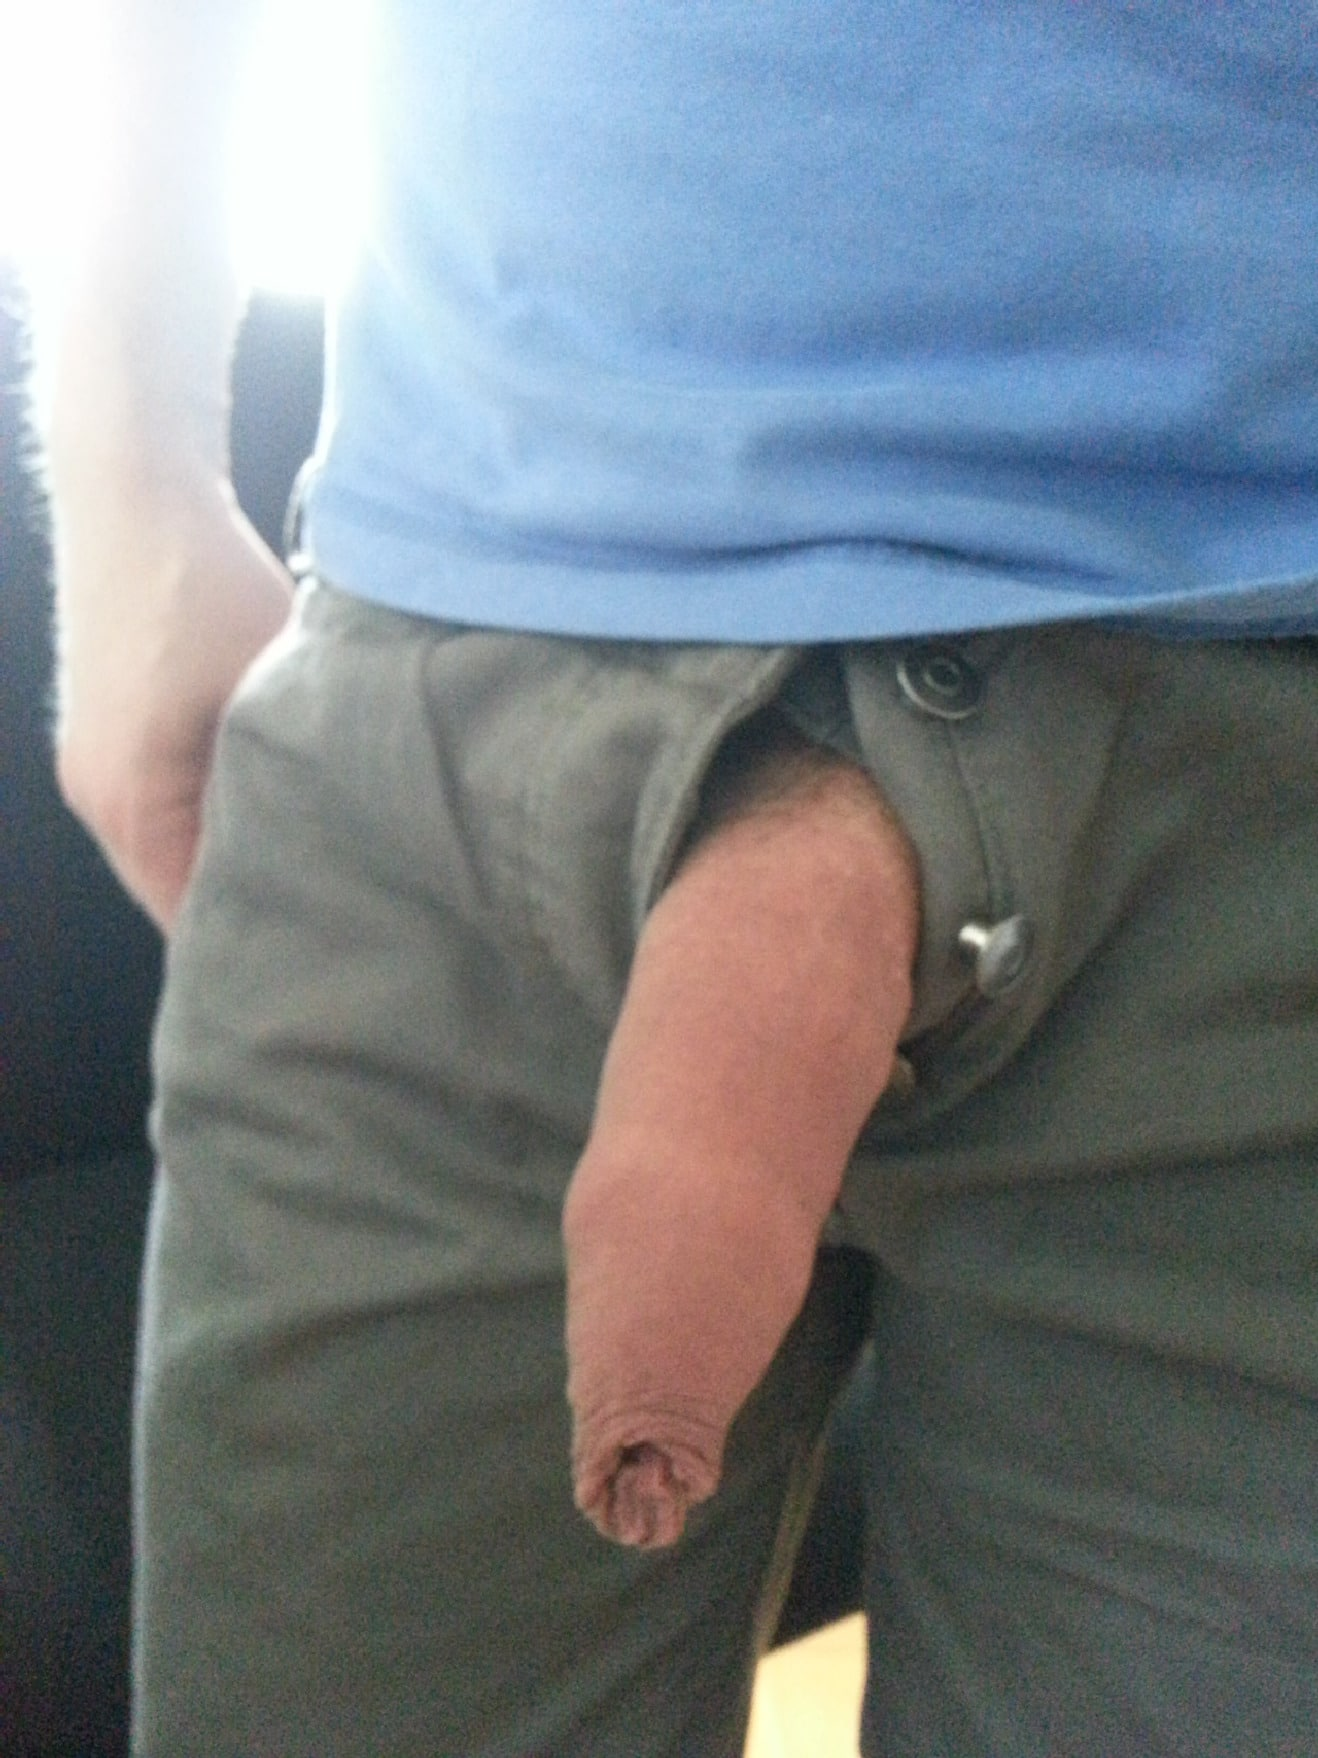 Soft Uncut Cock With Much Foreskin - Cock Picture Blog